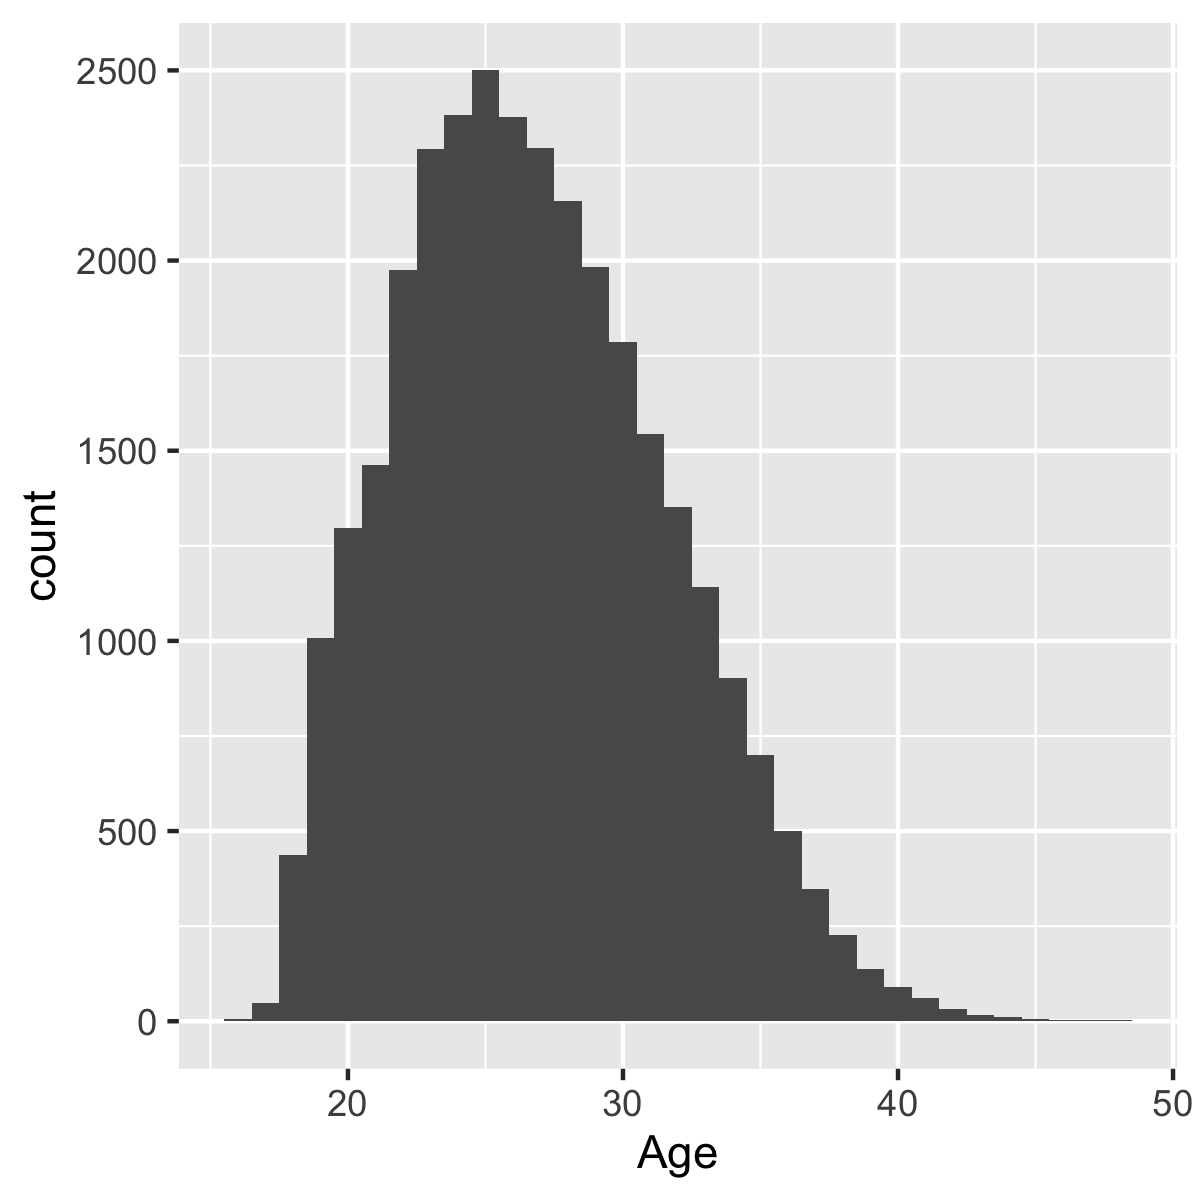 plot of chunk fig_histogram